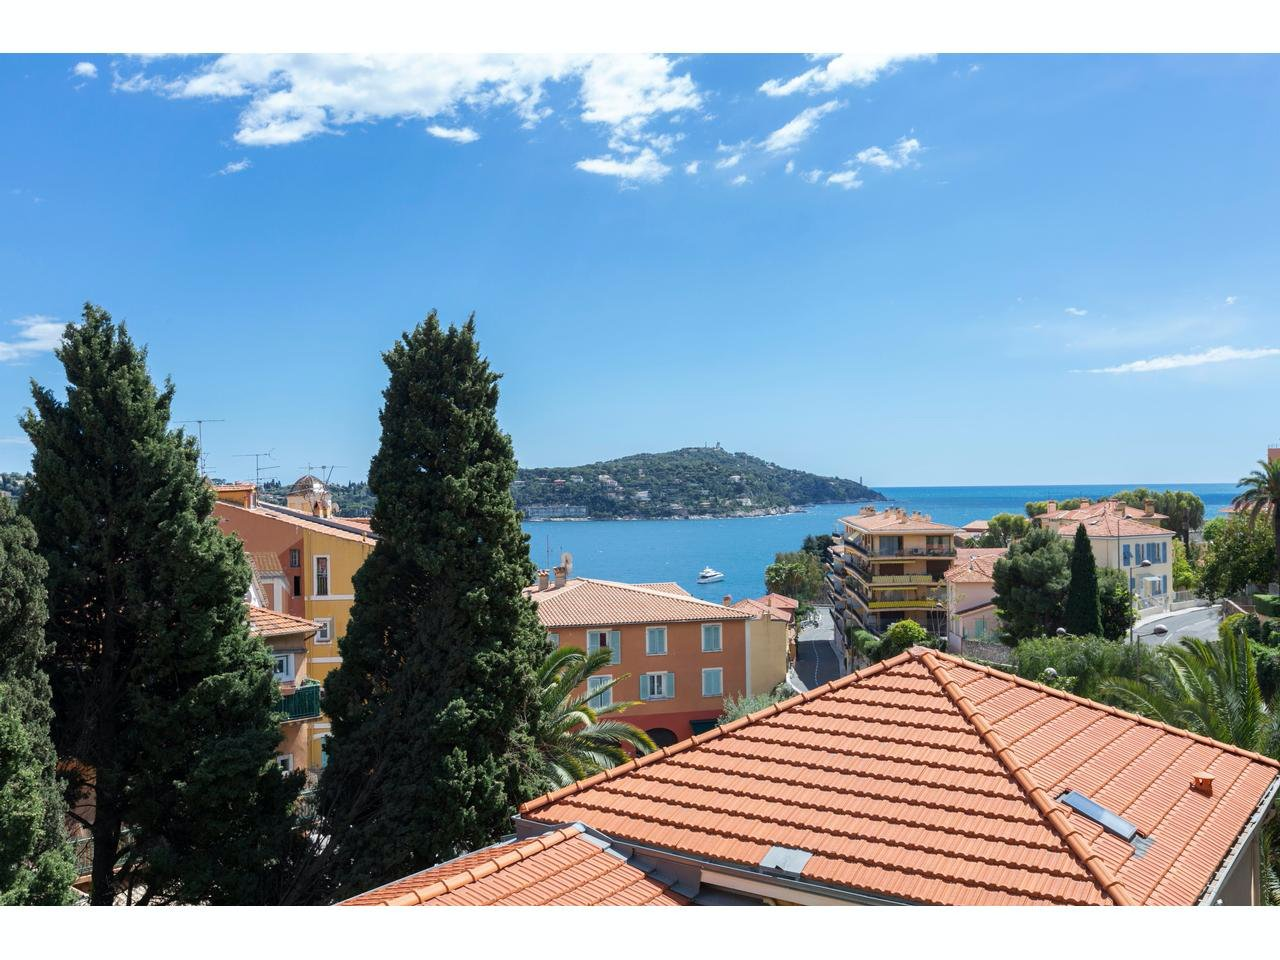 Apartment with large terrace in Villefranche-sur-mer close to all amenities